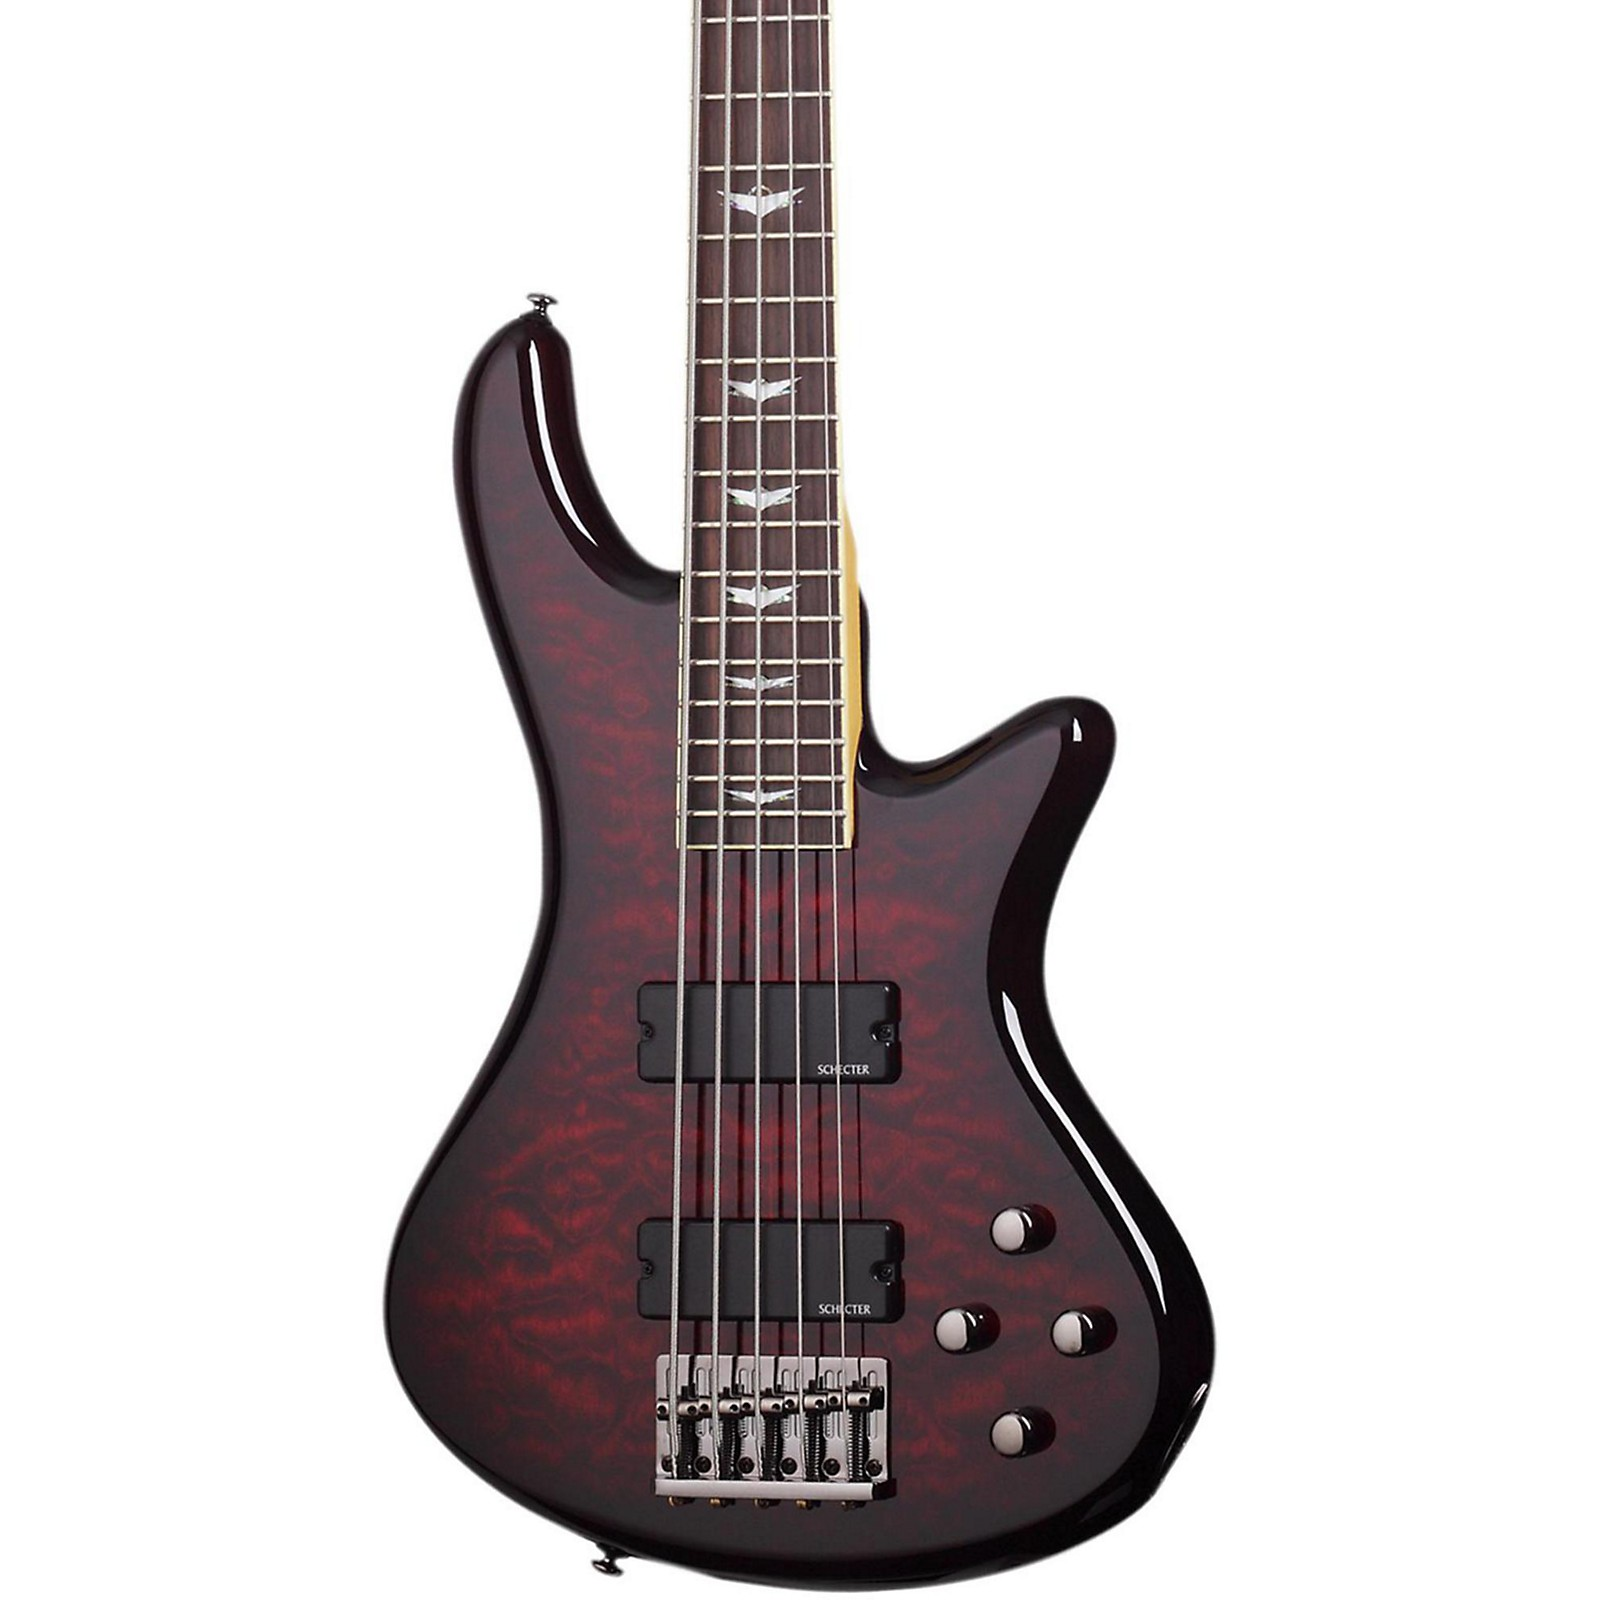 Schecter Guitar Research Stiletto Extreme-5 5-String Bass